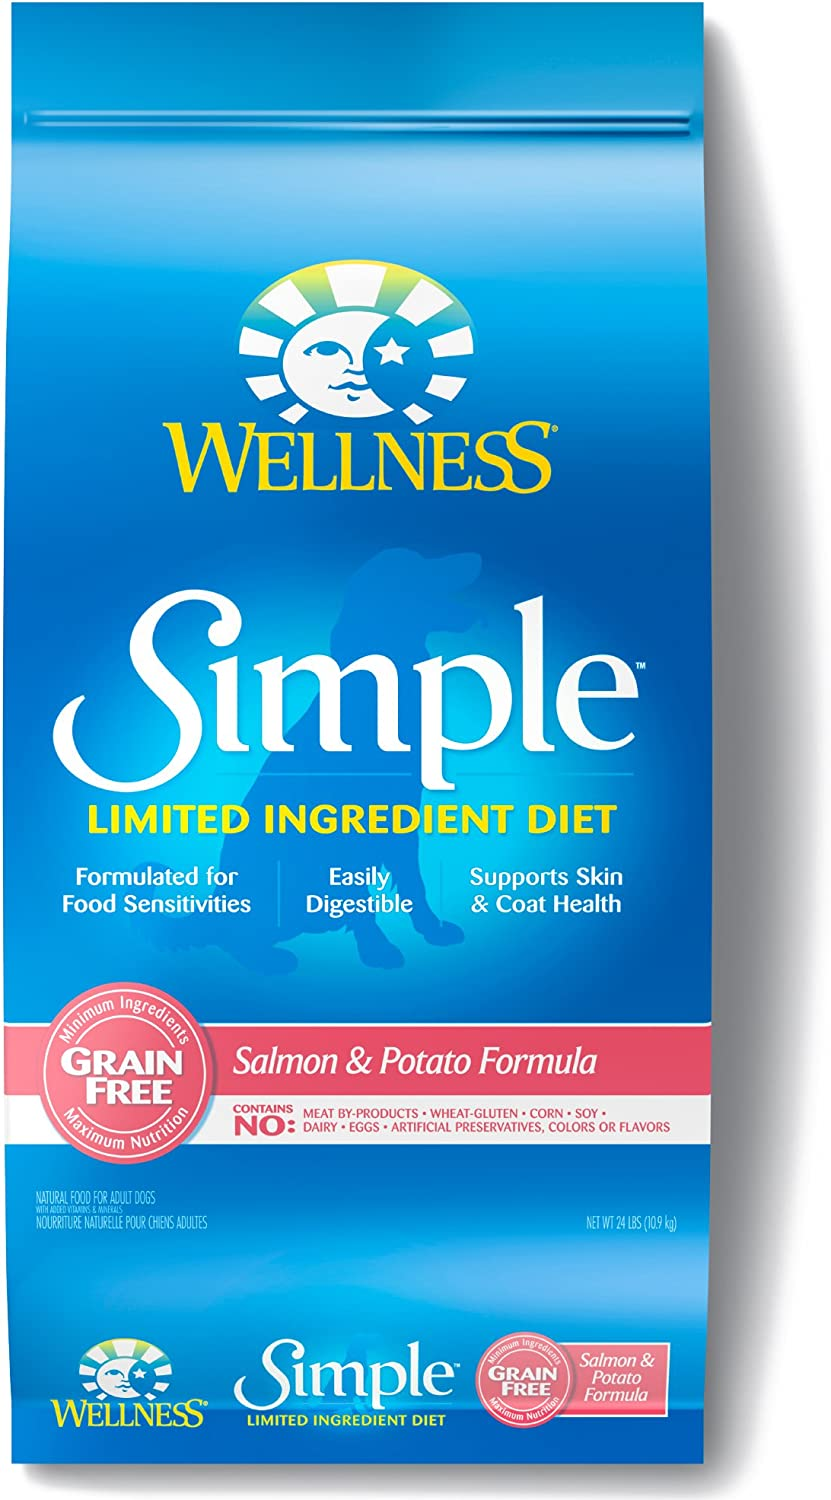 7. Wellness Simple Limited Ingredient Diet Grain-Free Dry Dog Food